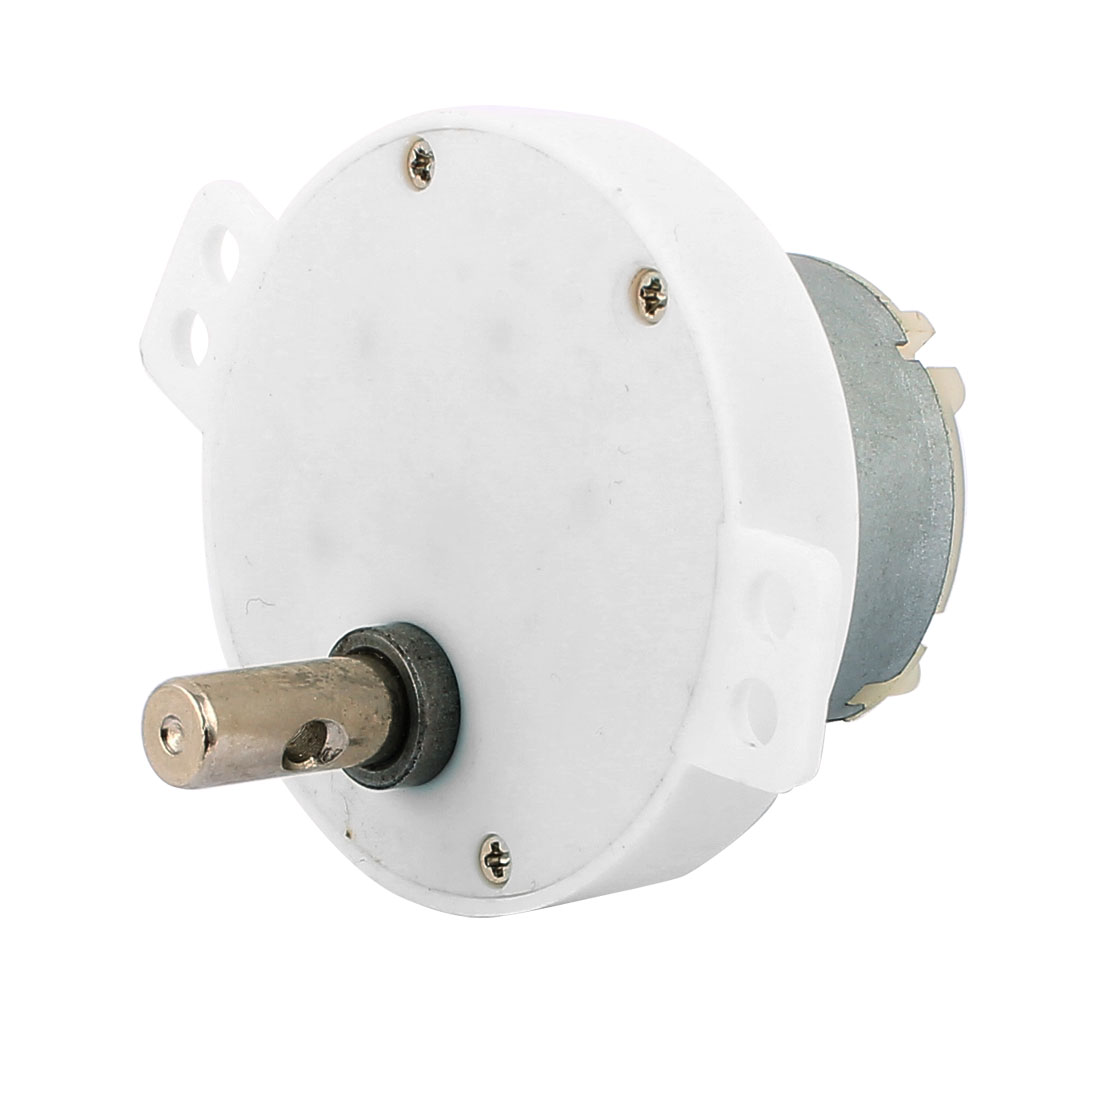 JS-50S DC24V 5RPM 7 x 15mm Eccentric Shaft 2 Terminals Connecting DC Geared Motor